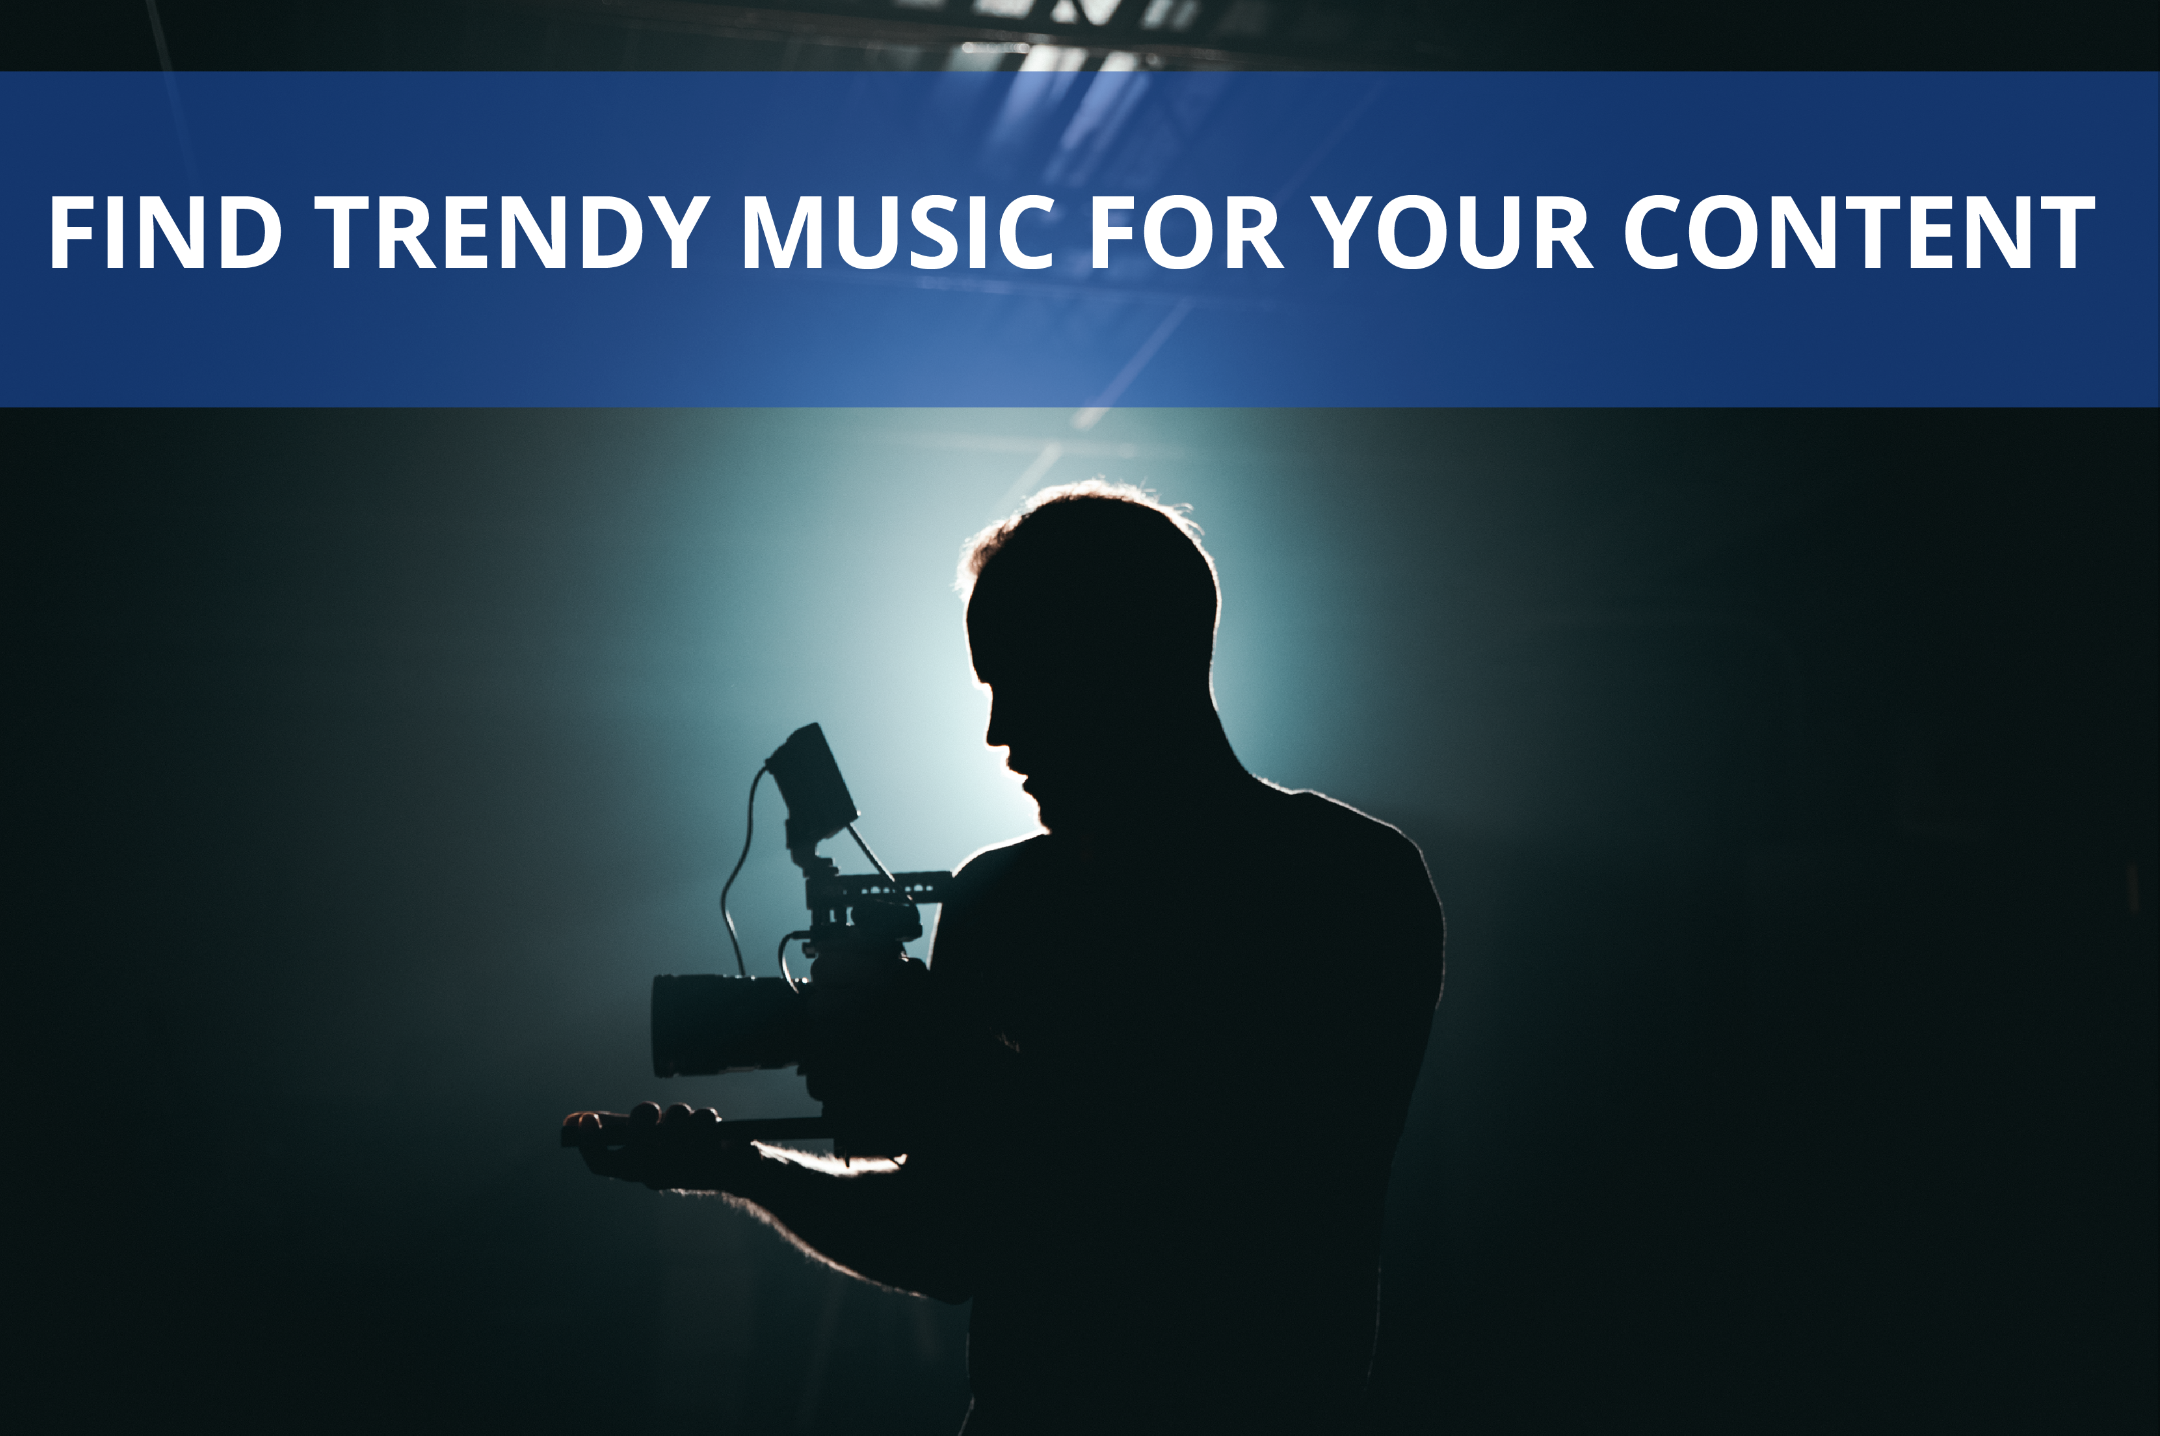 Our 5 Point Recipe to Find Music on Trend for Your Content